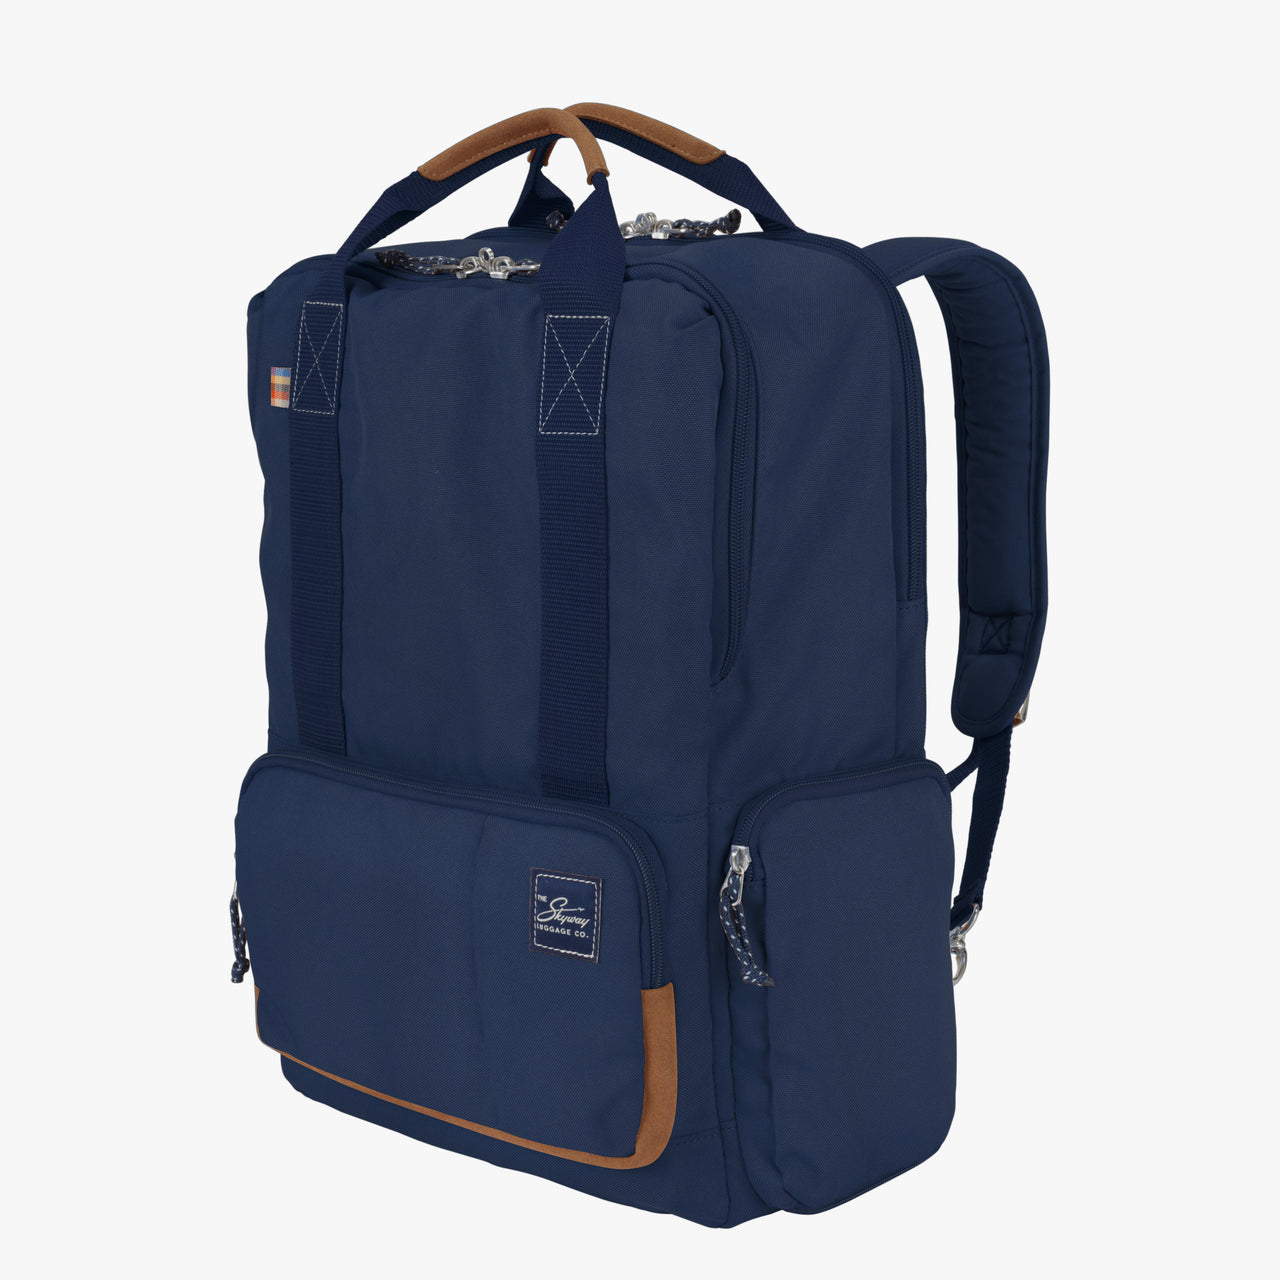 Whidbey Backpack in Blue